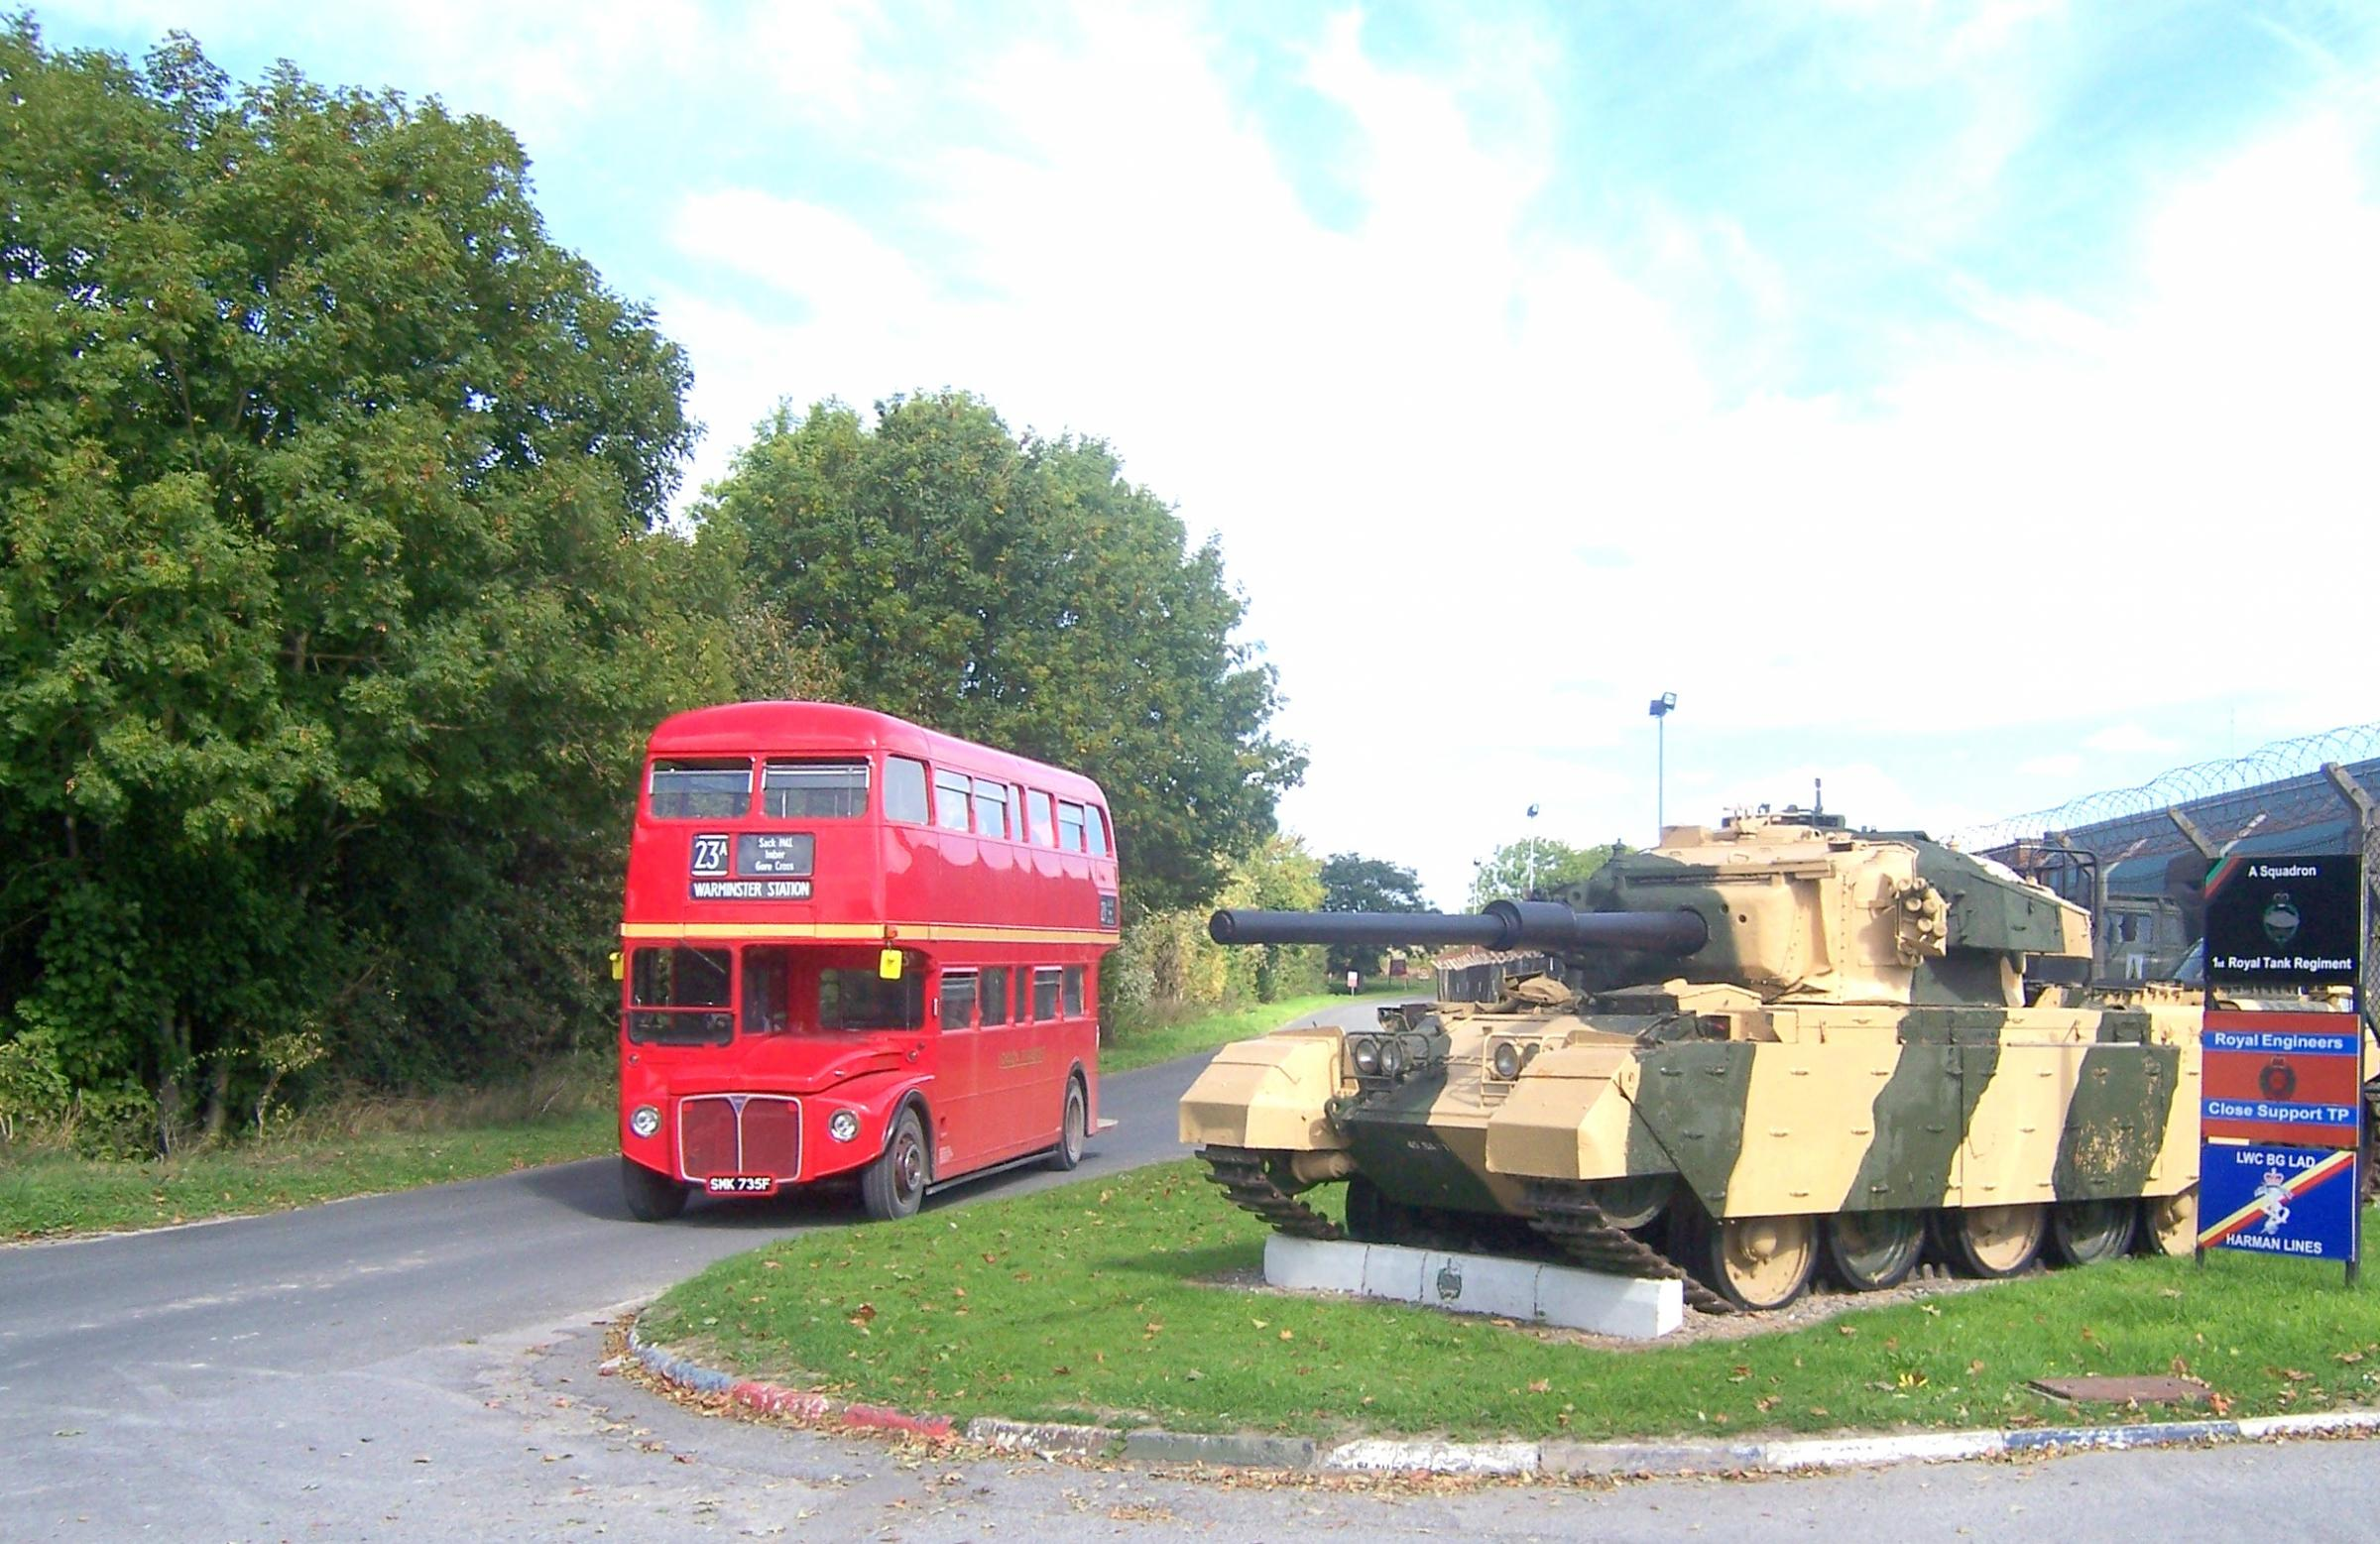 IMBERBUS - providing a classic bus service to the lost village of Imber